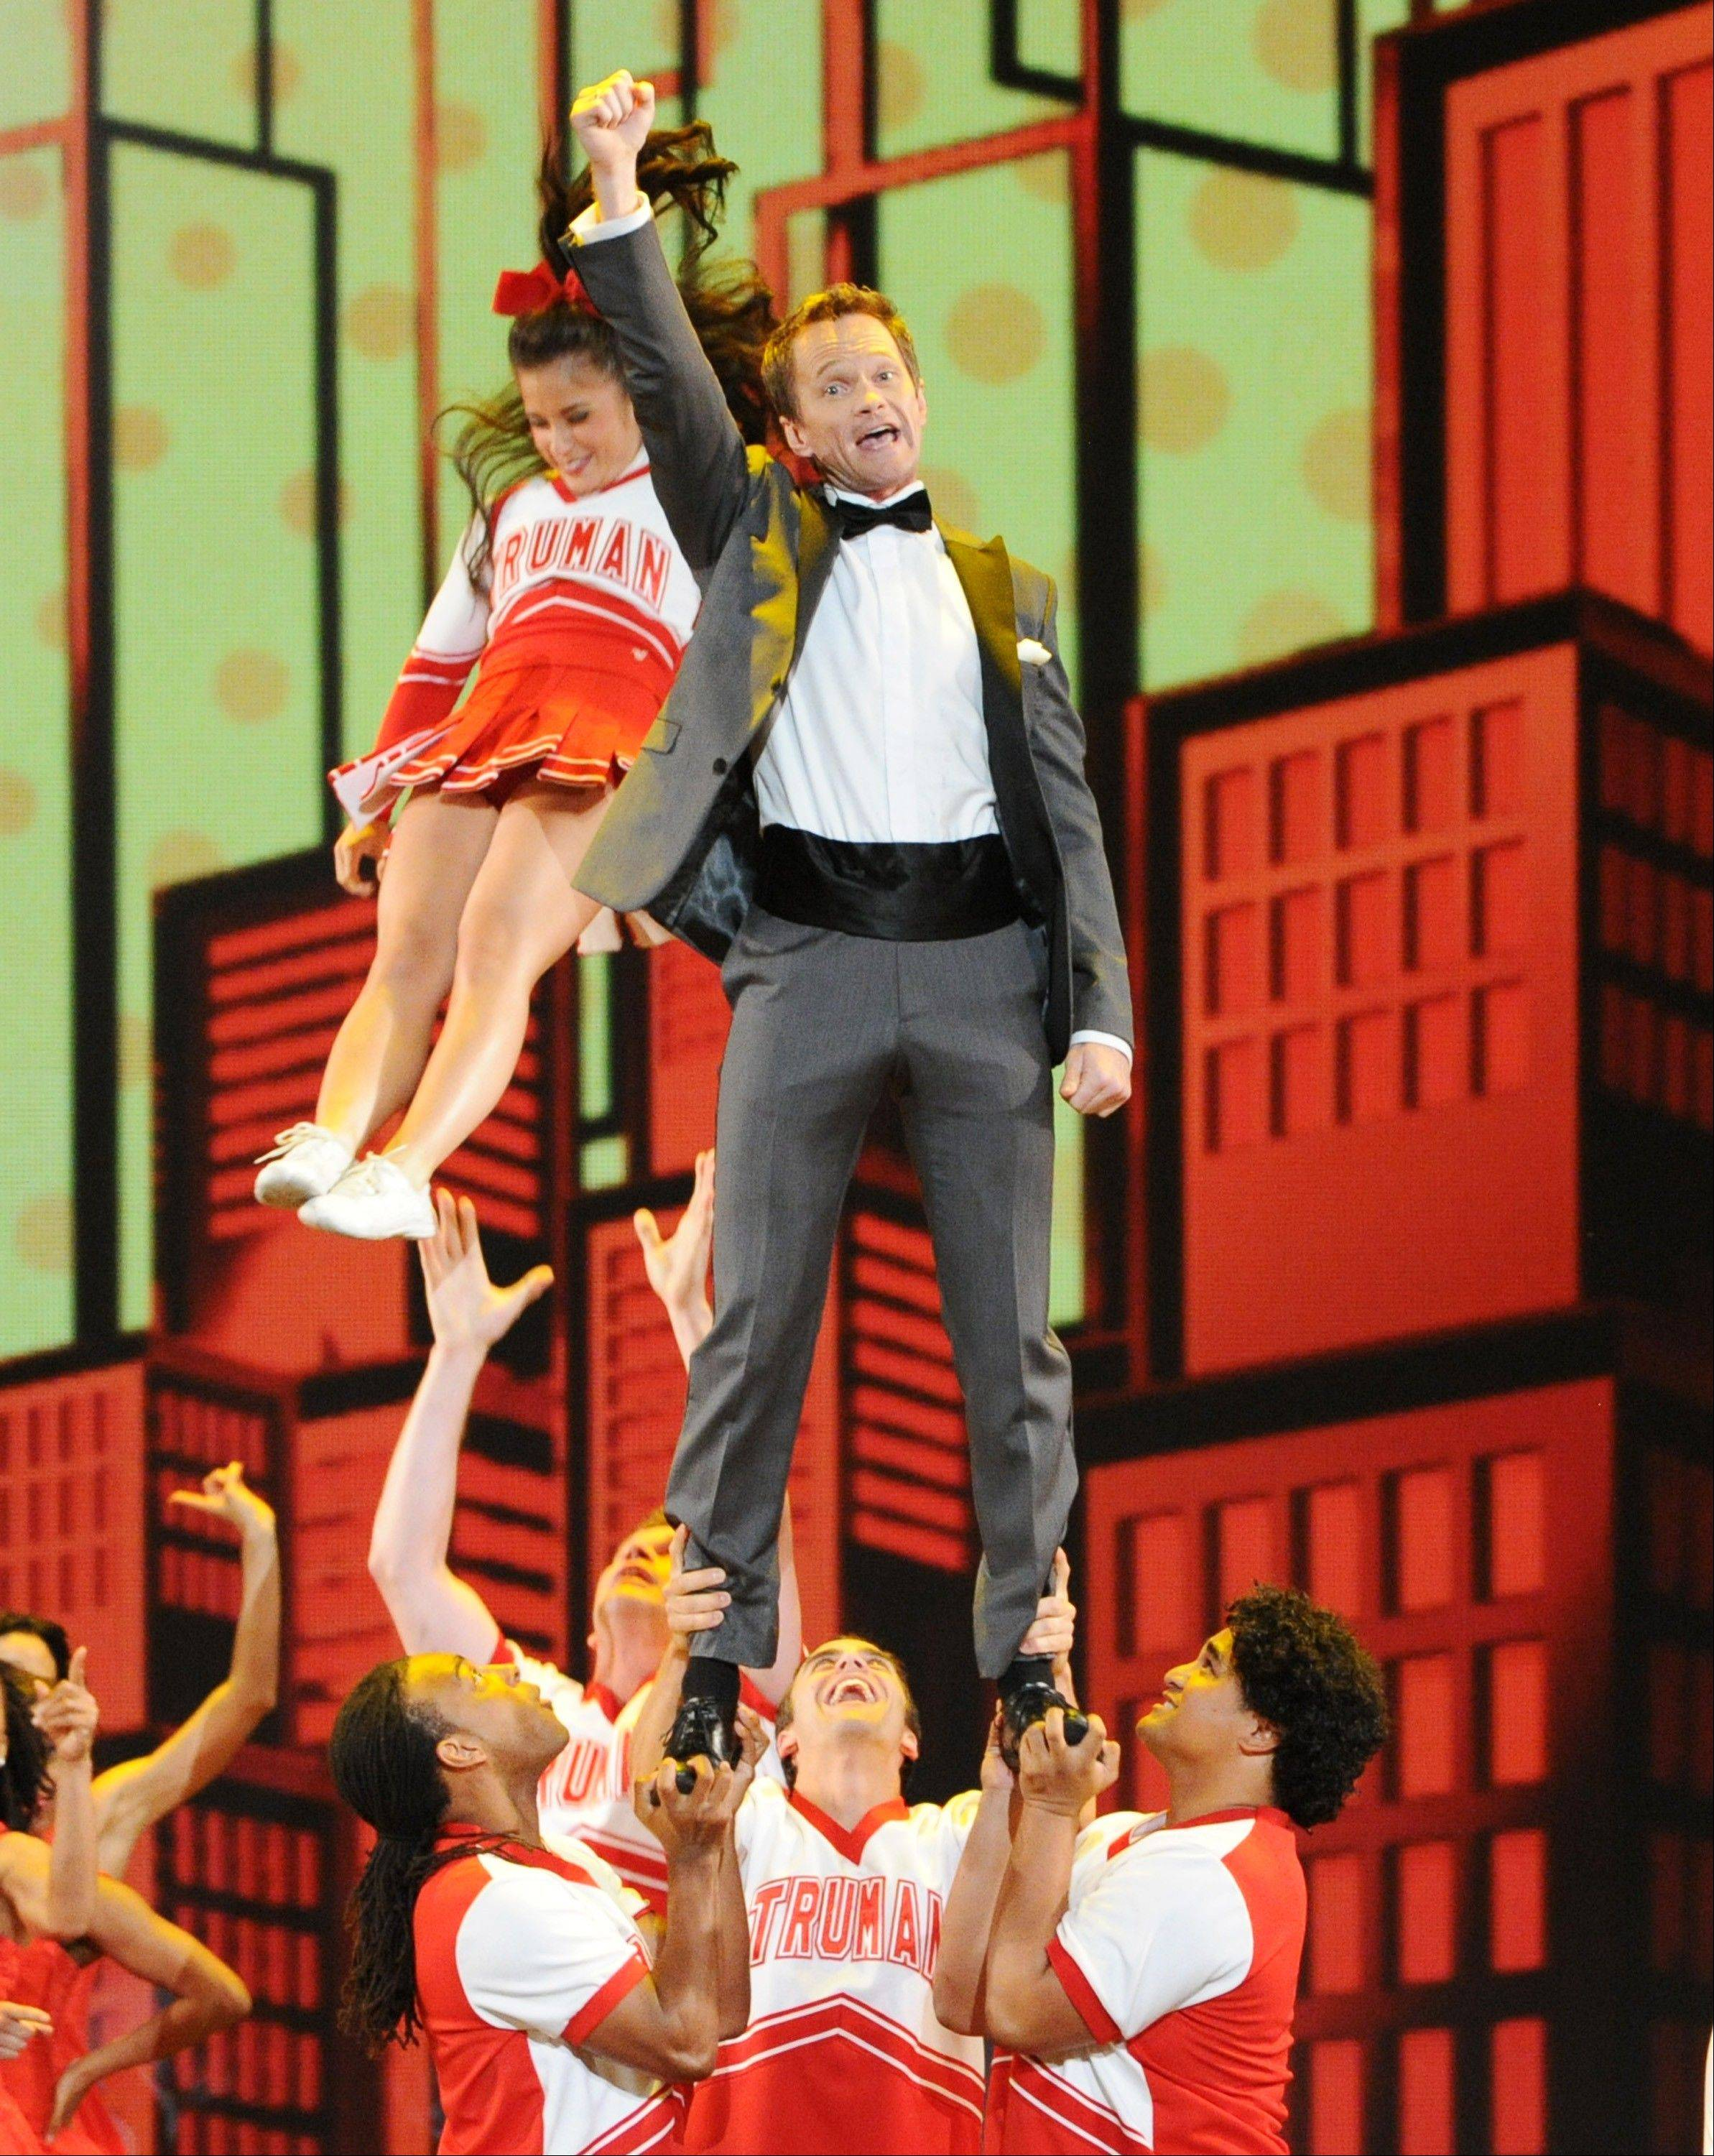 Actor Neil Patrick Harris performs on stage during his opening number at the 67th Annual Tony Awards, on Sunday, June 9, 2013 in New York.